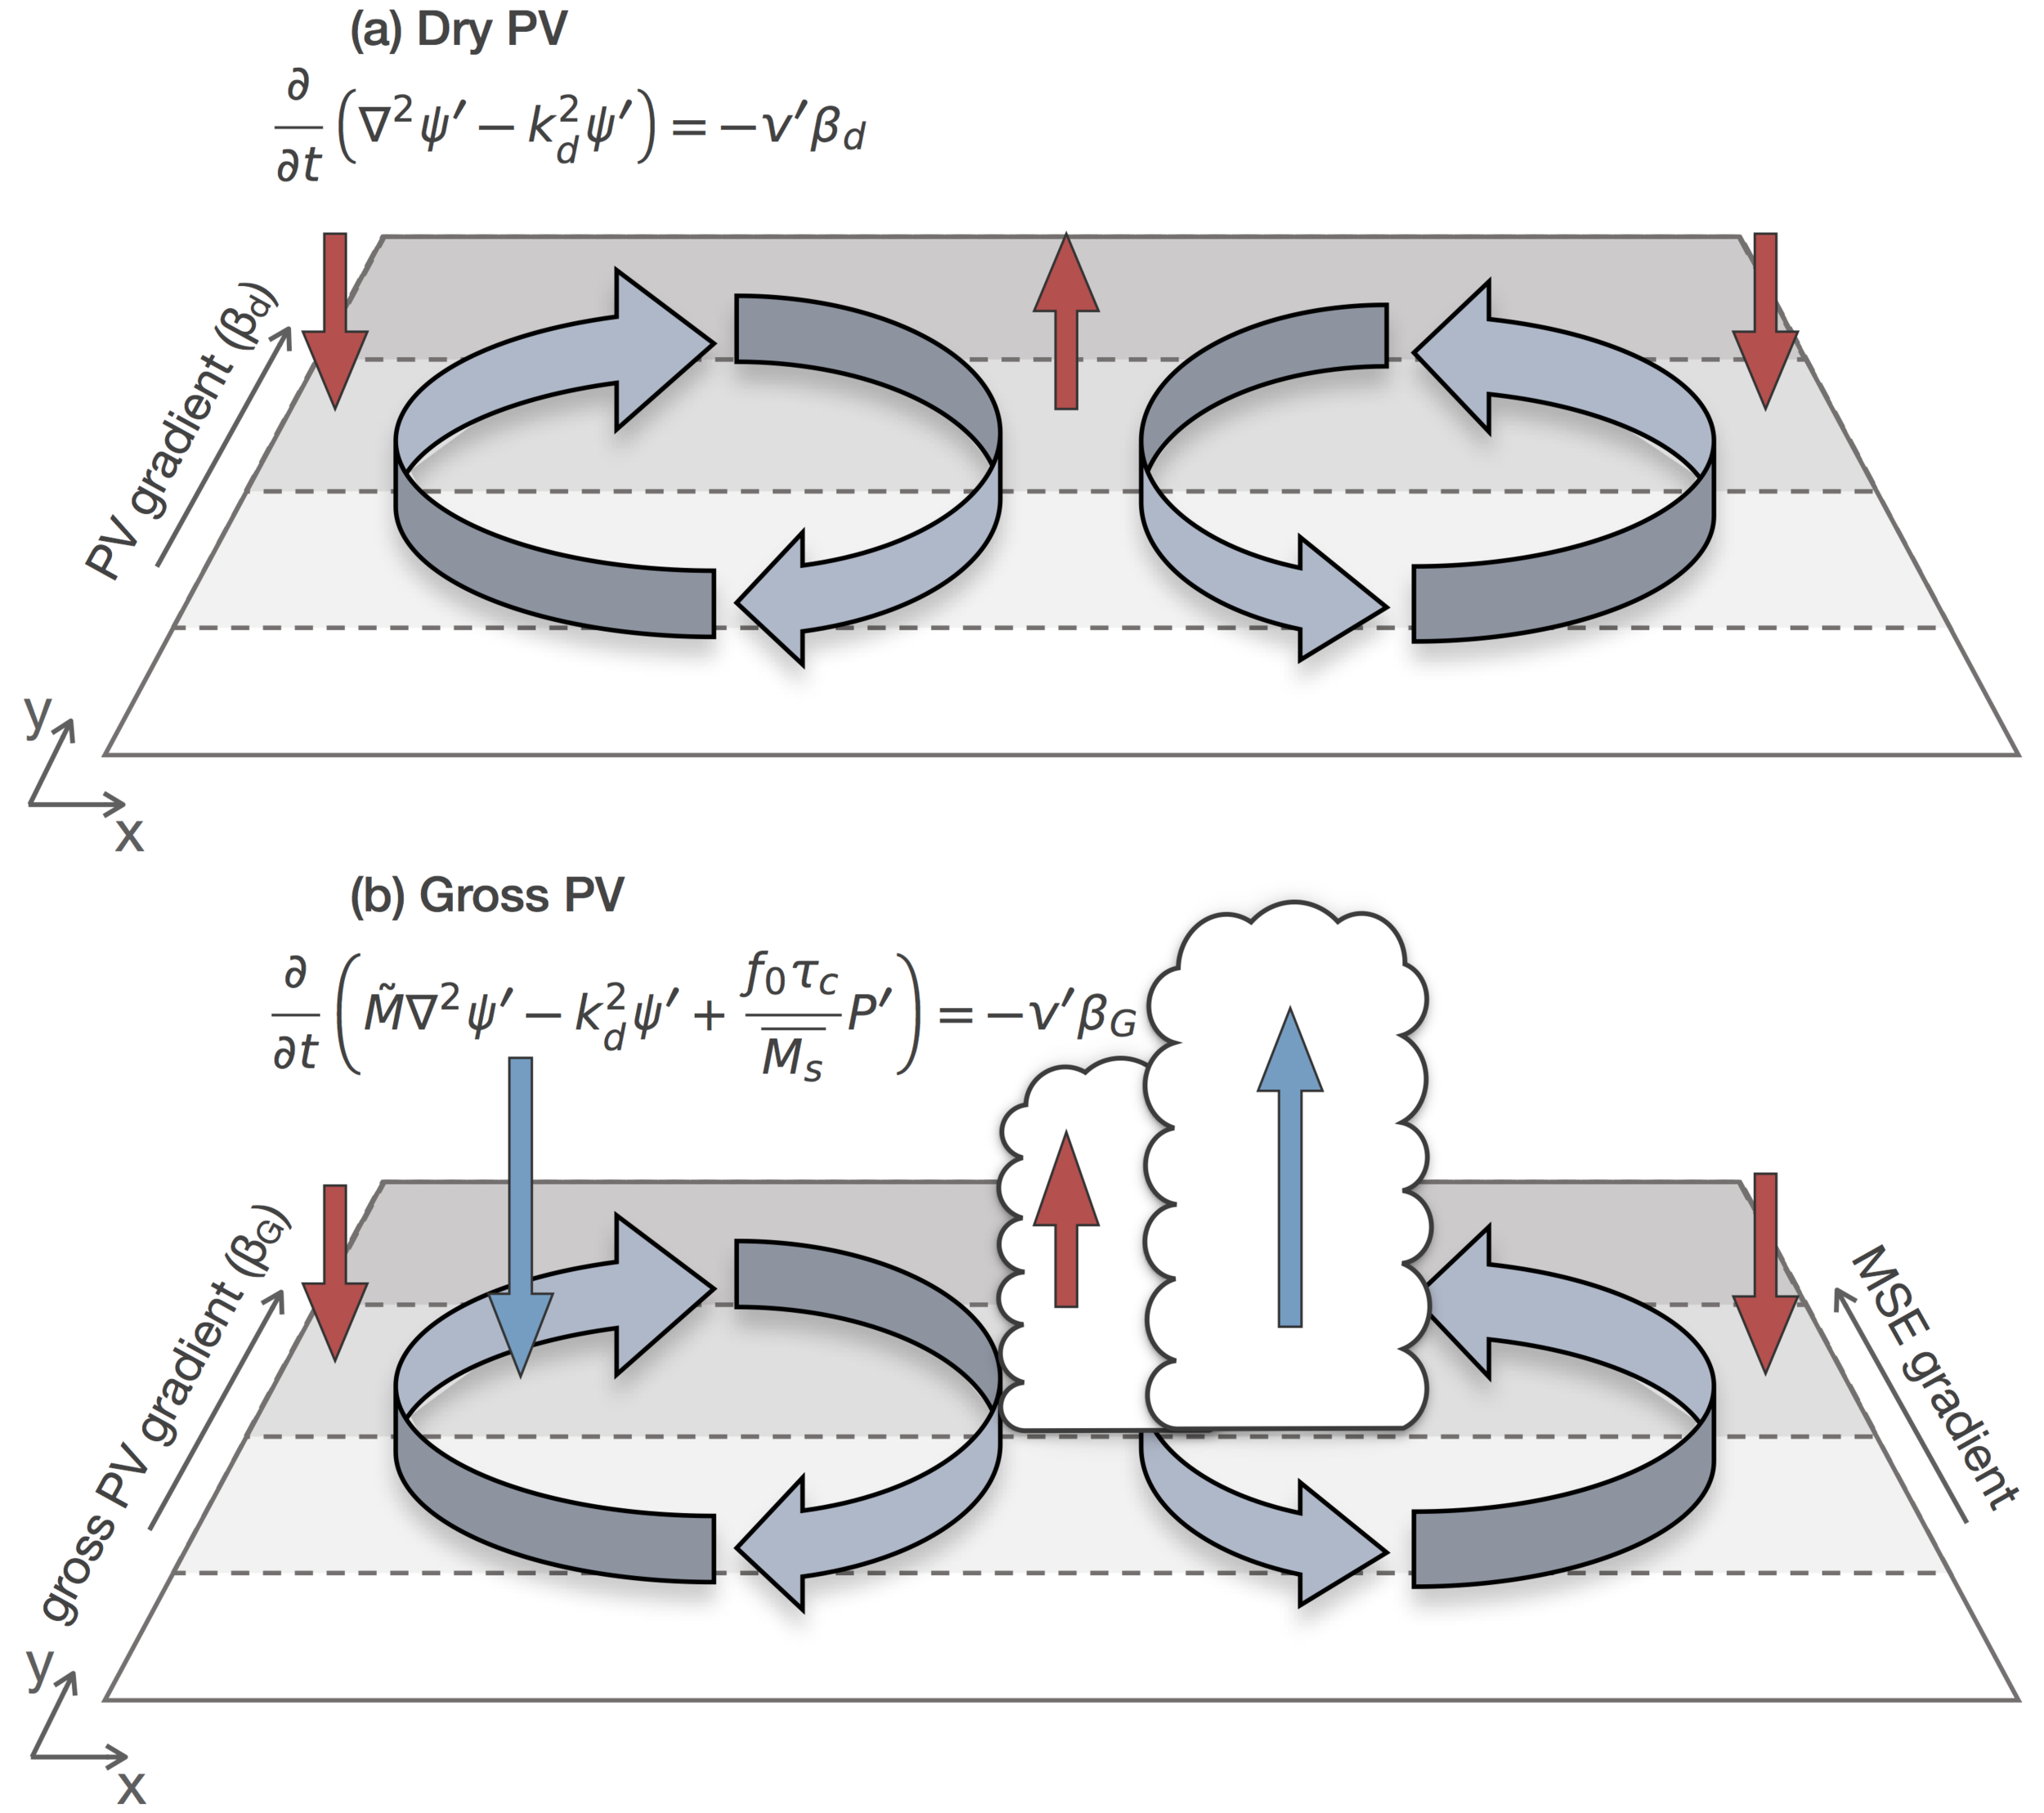 schematic_monsoon_dep_theory_v2.png